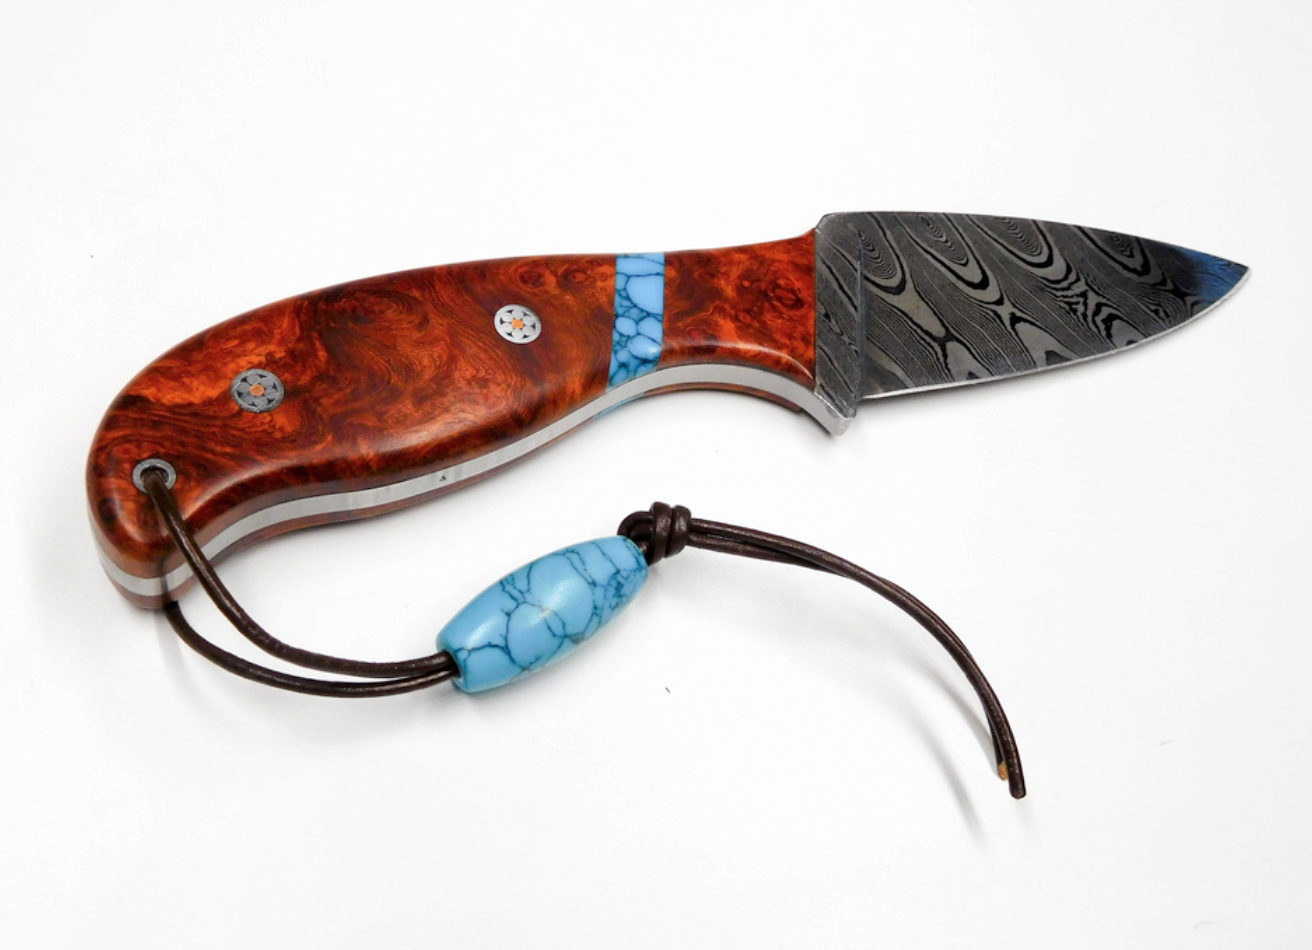 Brent Nilson - http://www.jbeagle.netI design, craft, and install special handle material on knife blades. Wood, Antler, Buffalo Horn, Buffalo Bone, Camel Bone, OtherI specialize in Damascus multi layer steel blades -very artistic